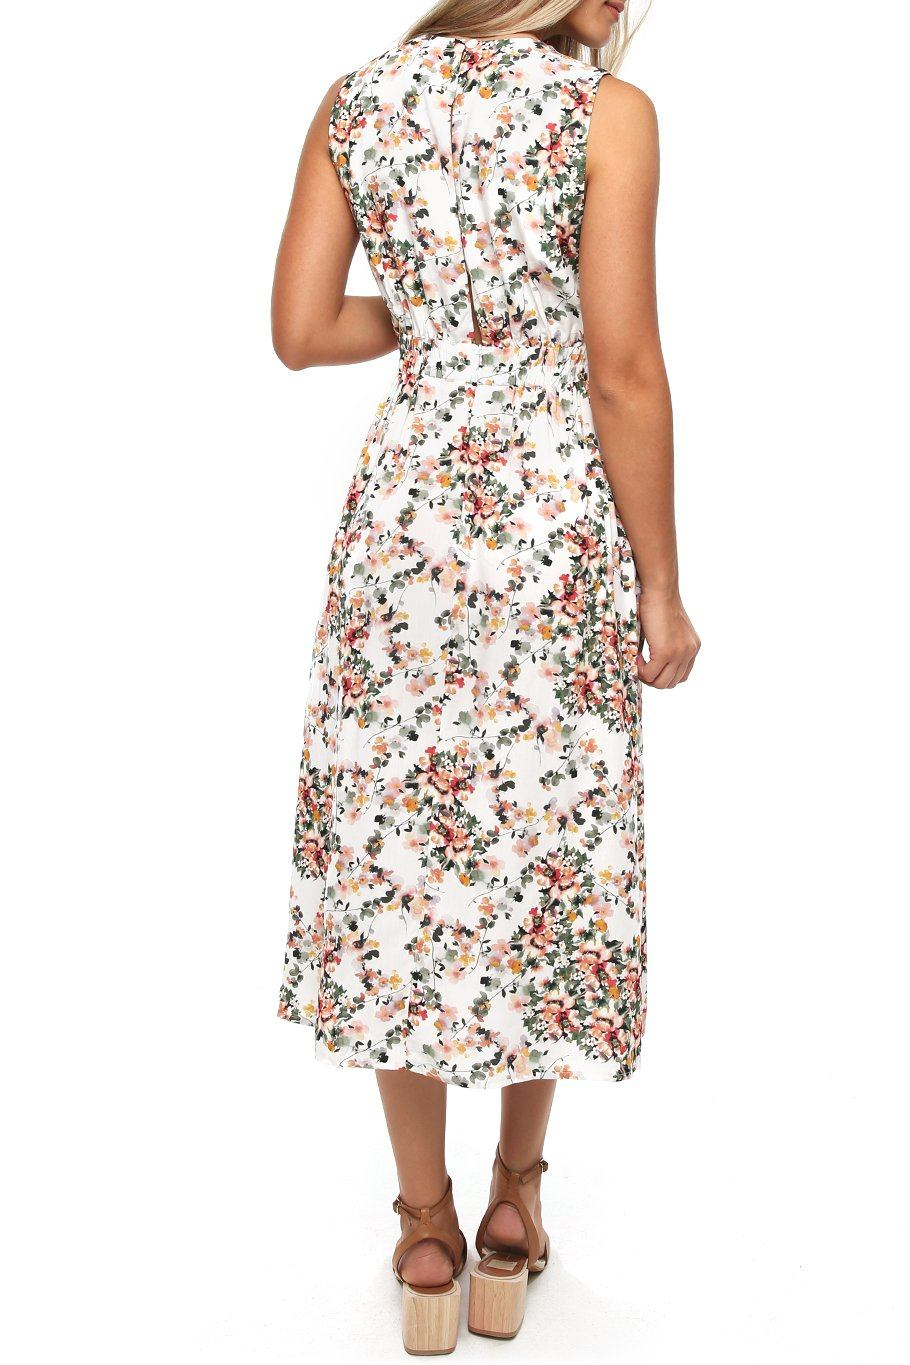 Magnolia Midi Dress - Garden Party - Shore